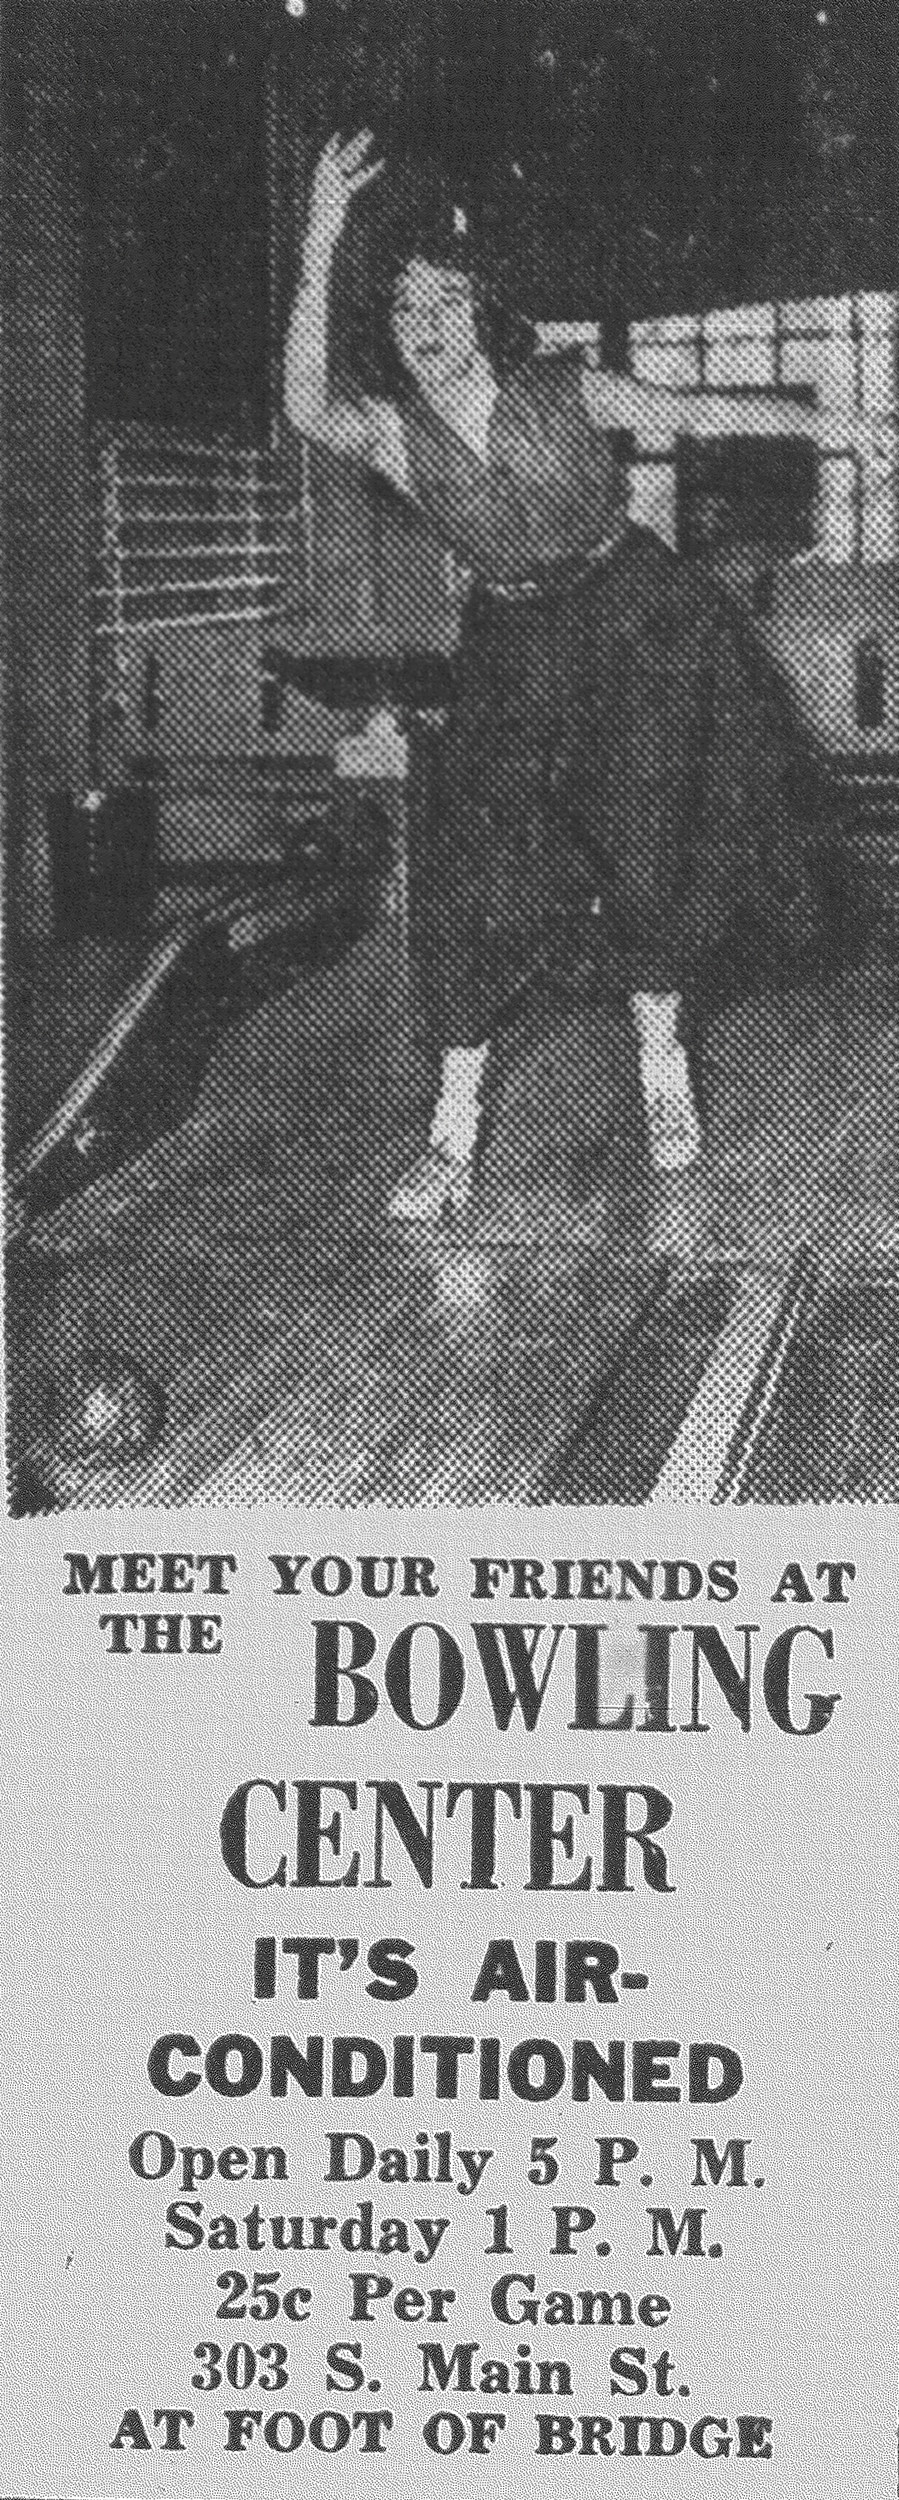 In 1952, the bowling center was located on South Main Street.